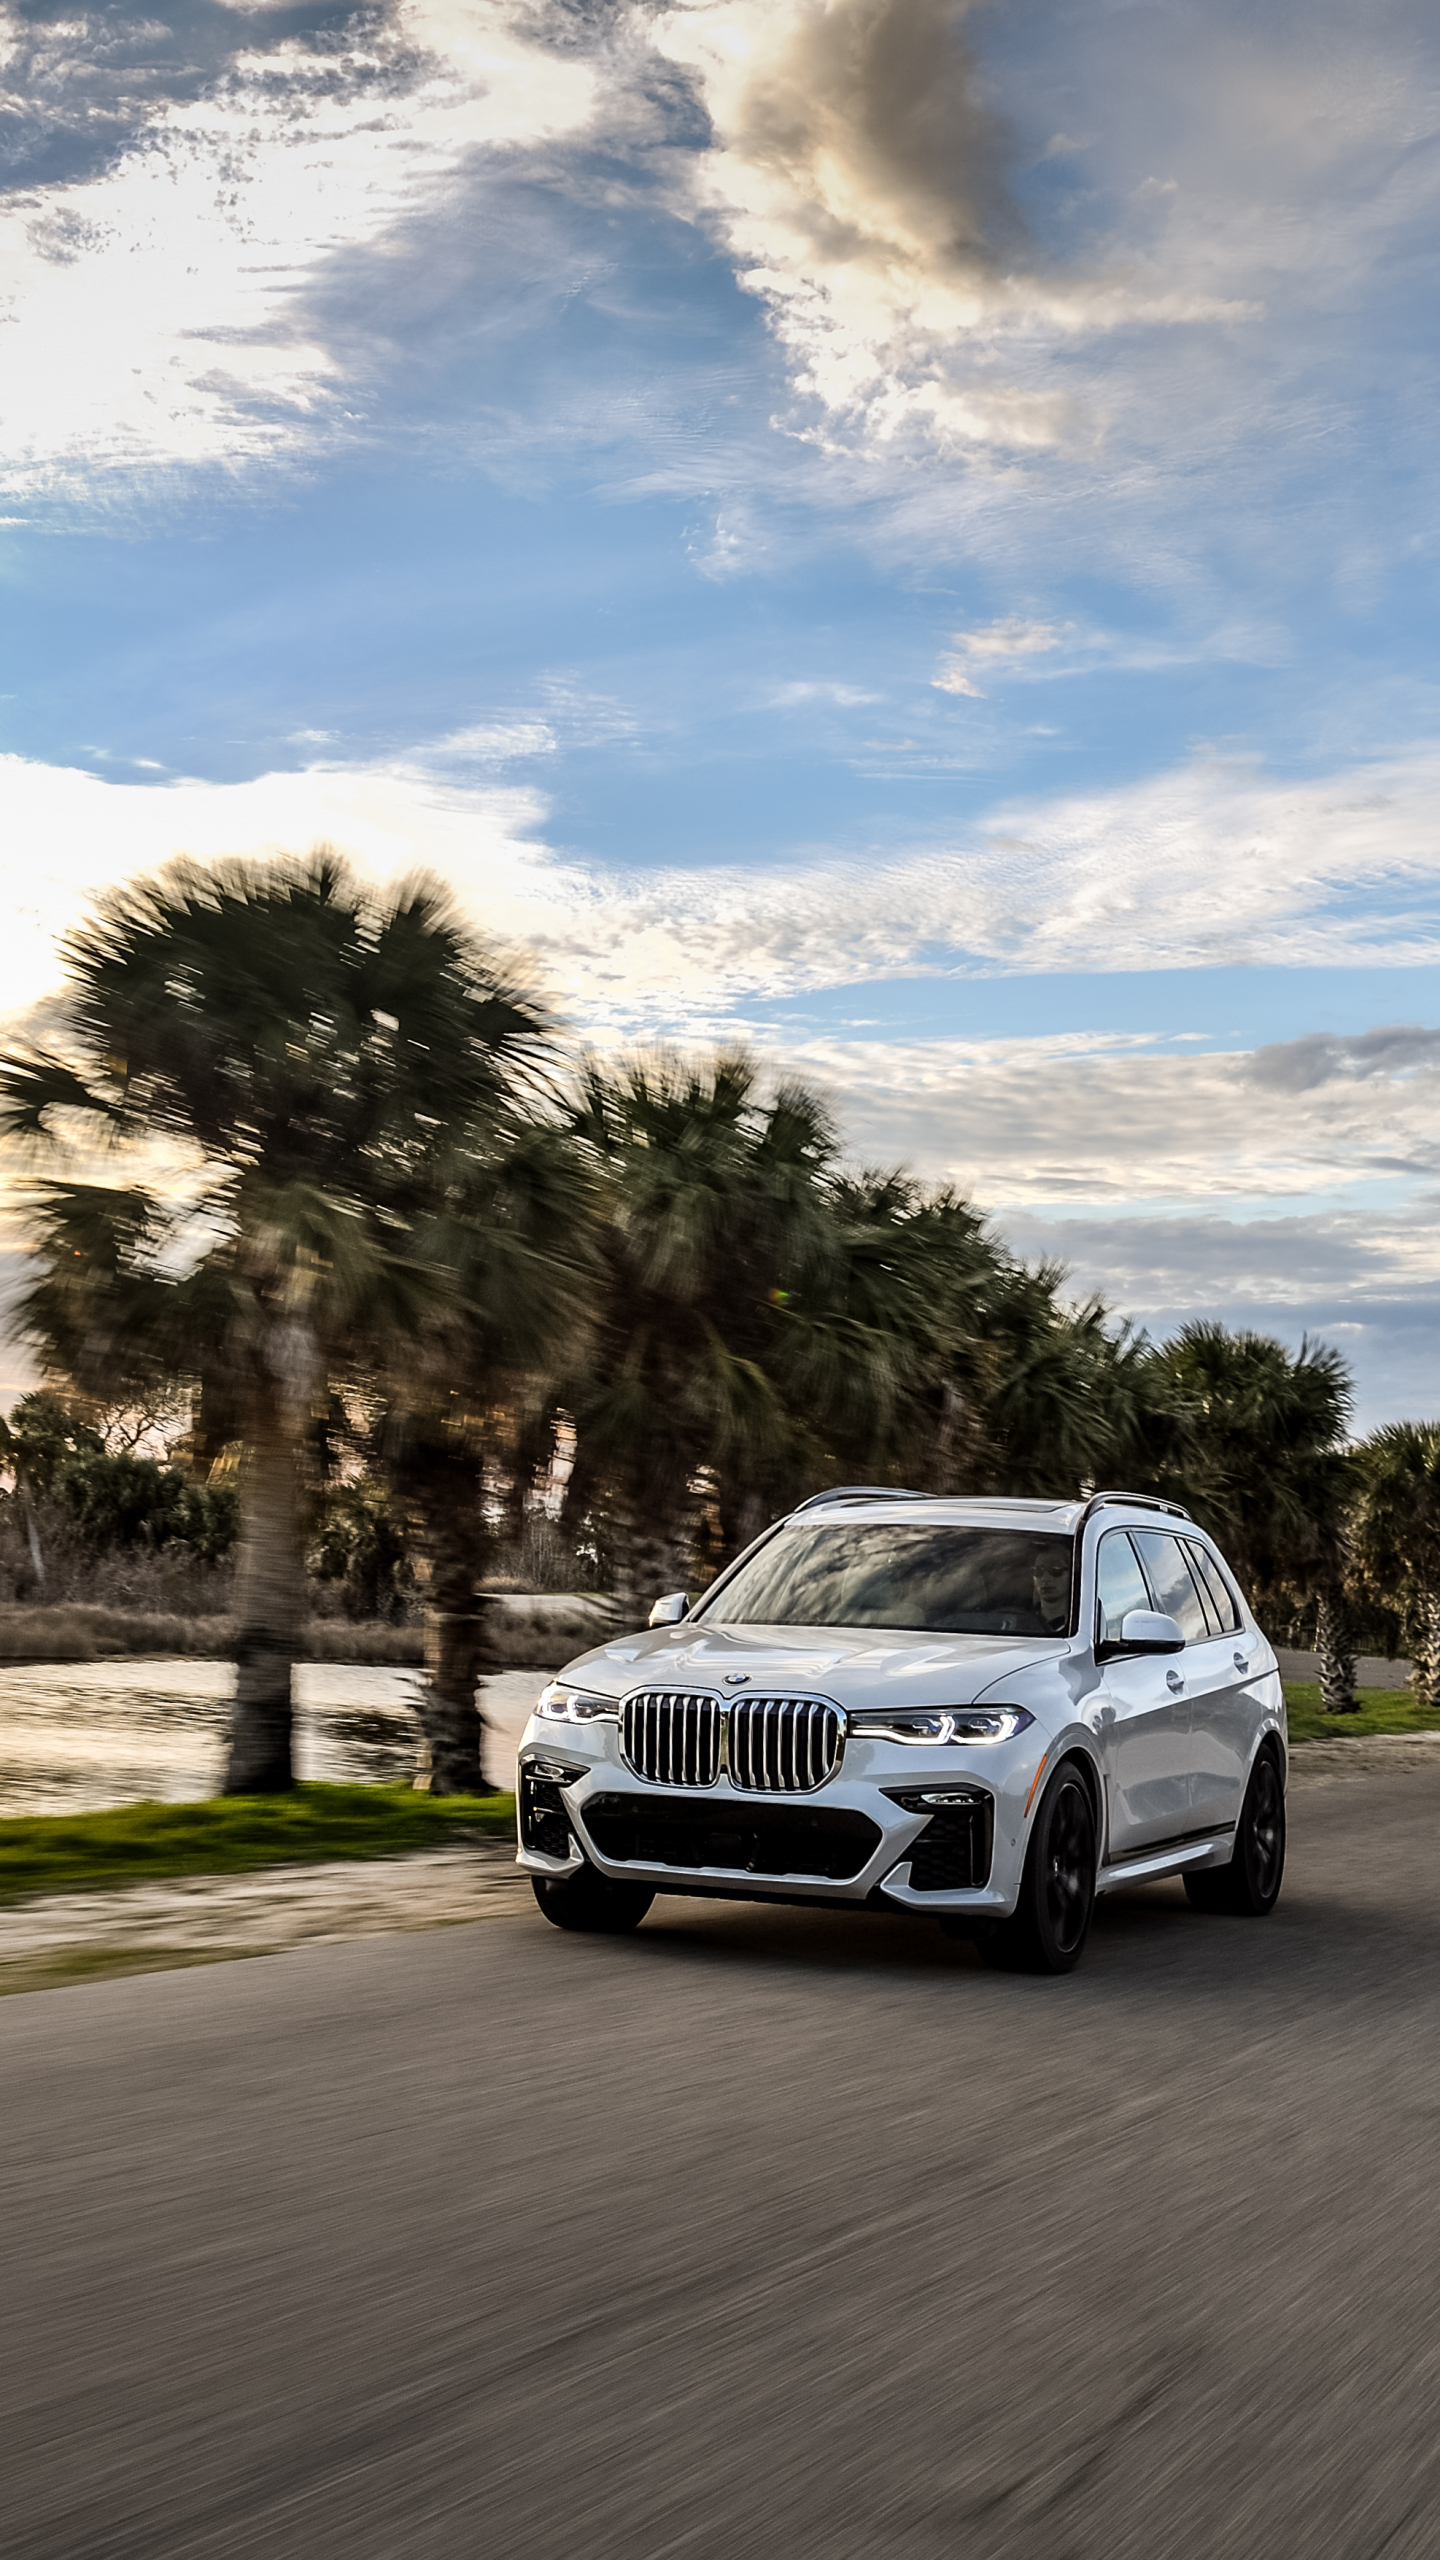 Wallpaper Bmw X7 Iphone 1440x2560 Download Hd Wallpaper Wallpapertip